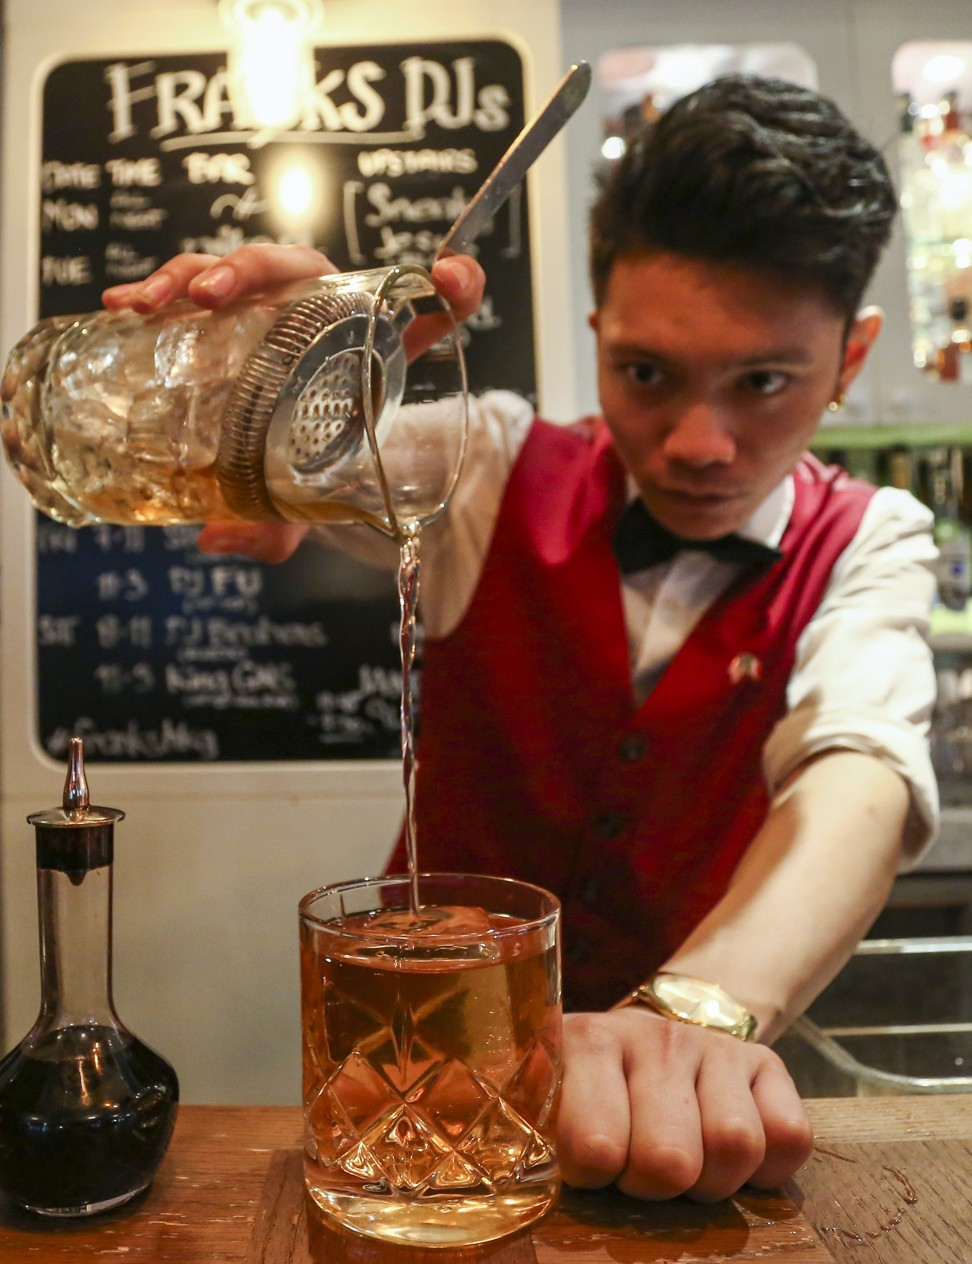 What's the most important ingredient in a cocktail? You'll never guess ...